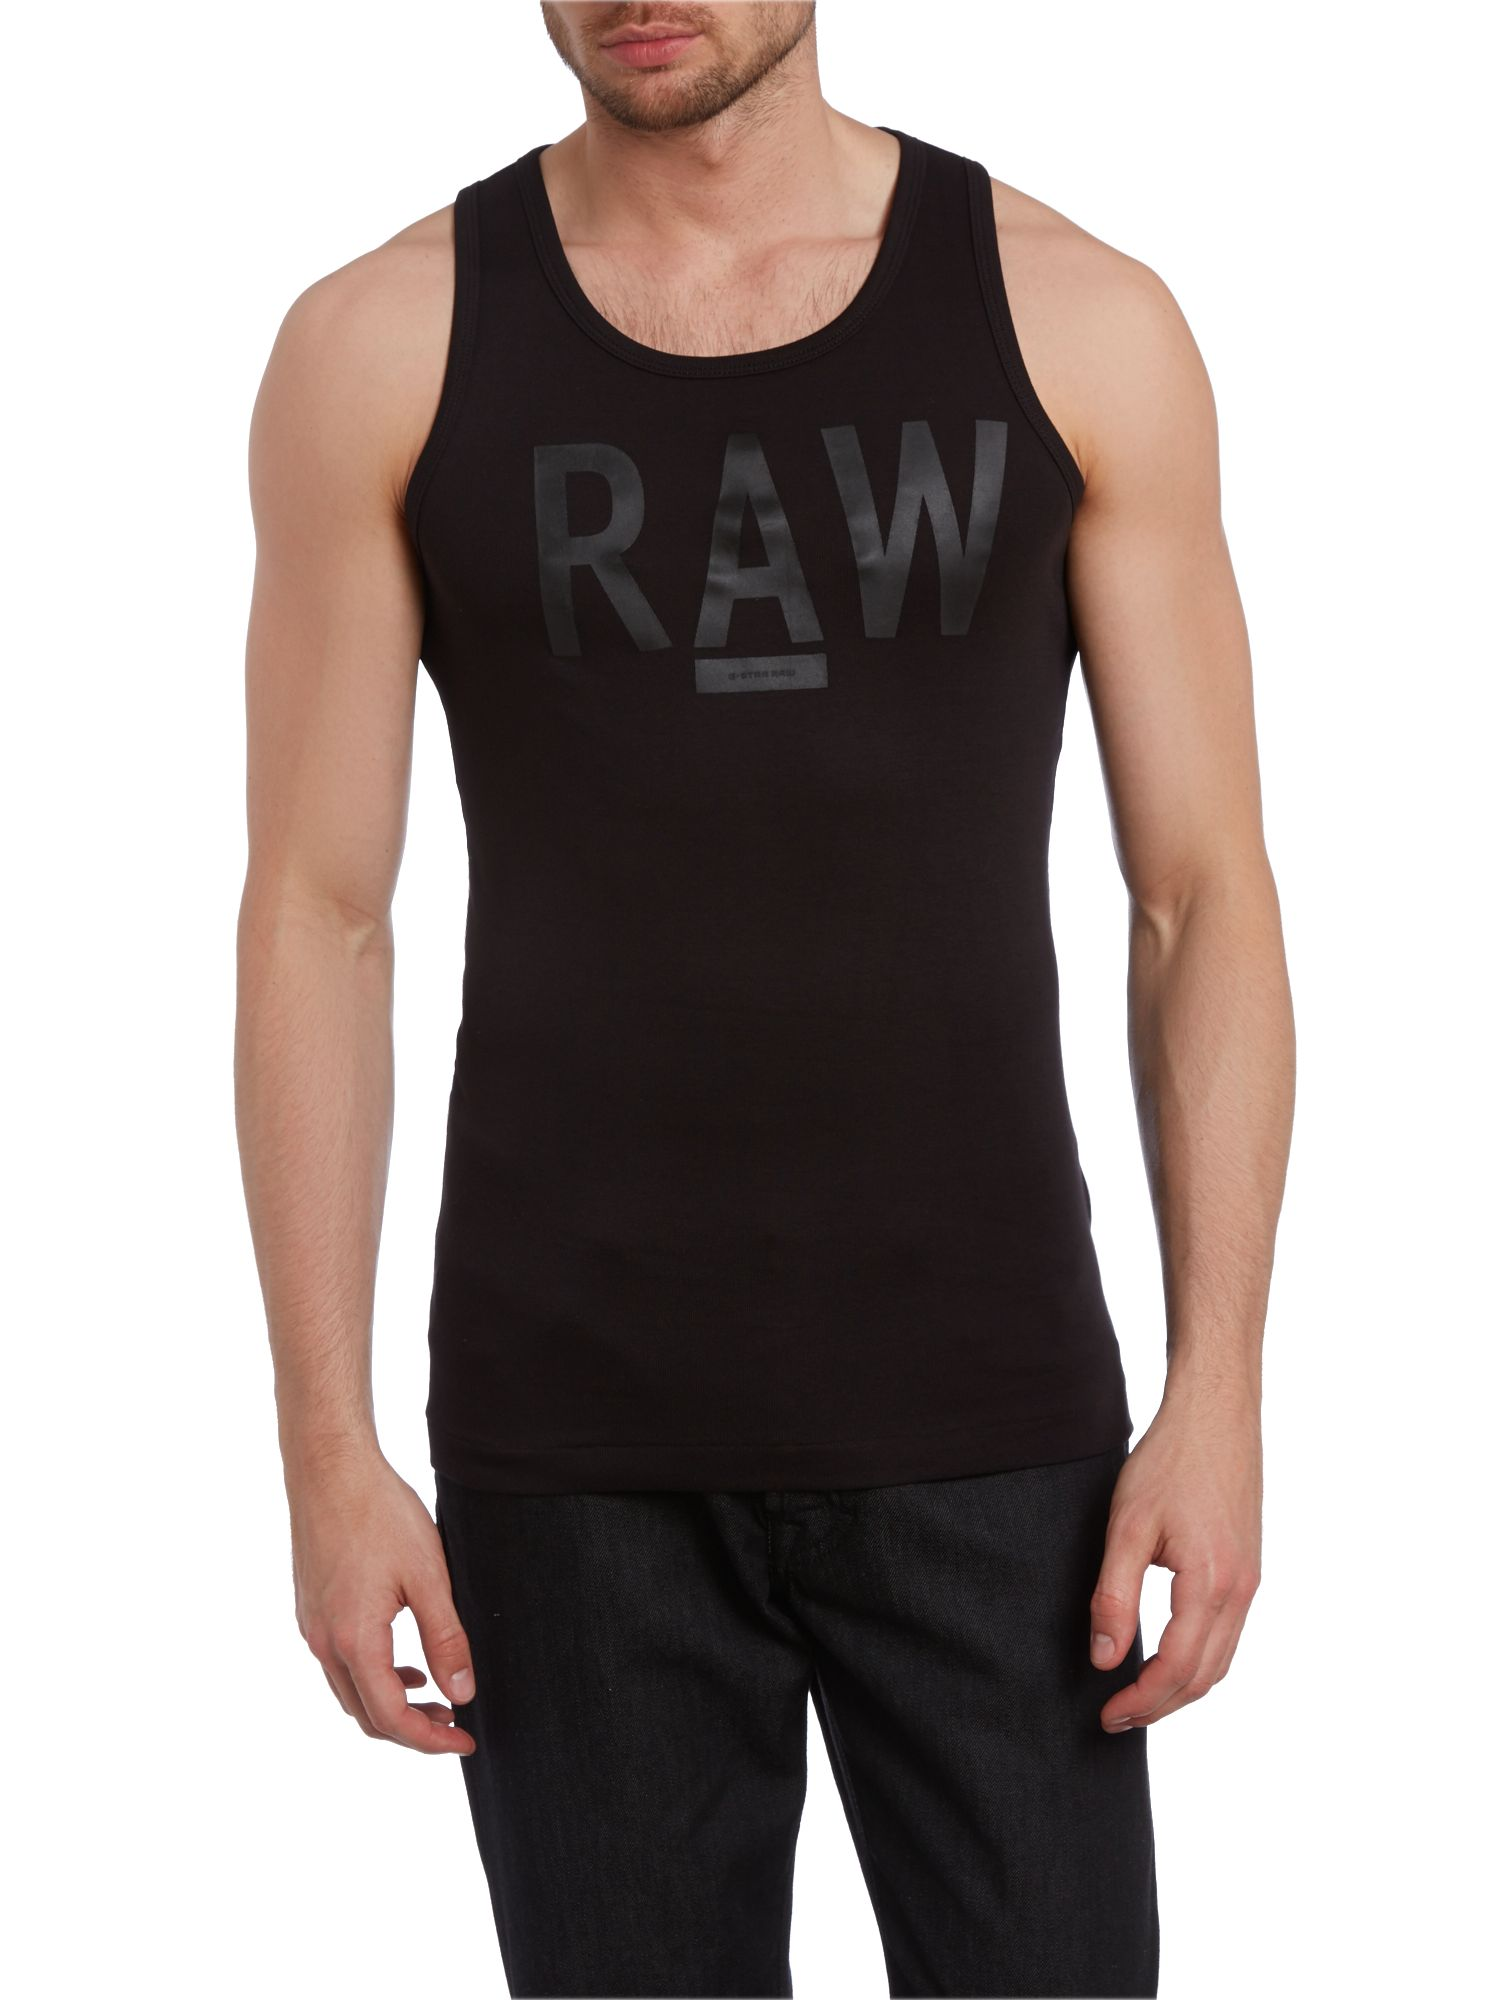 Raw pint scoop neck vest